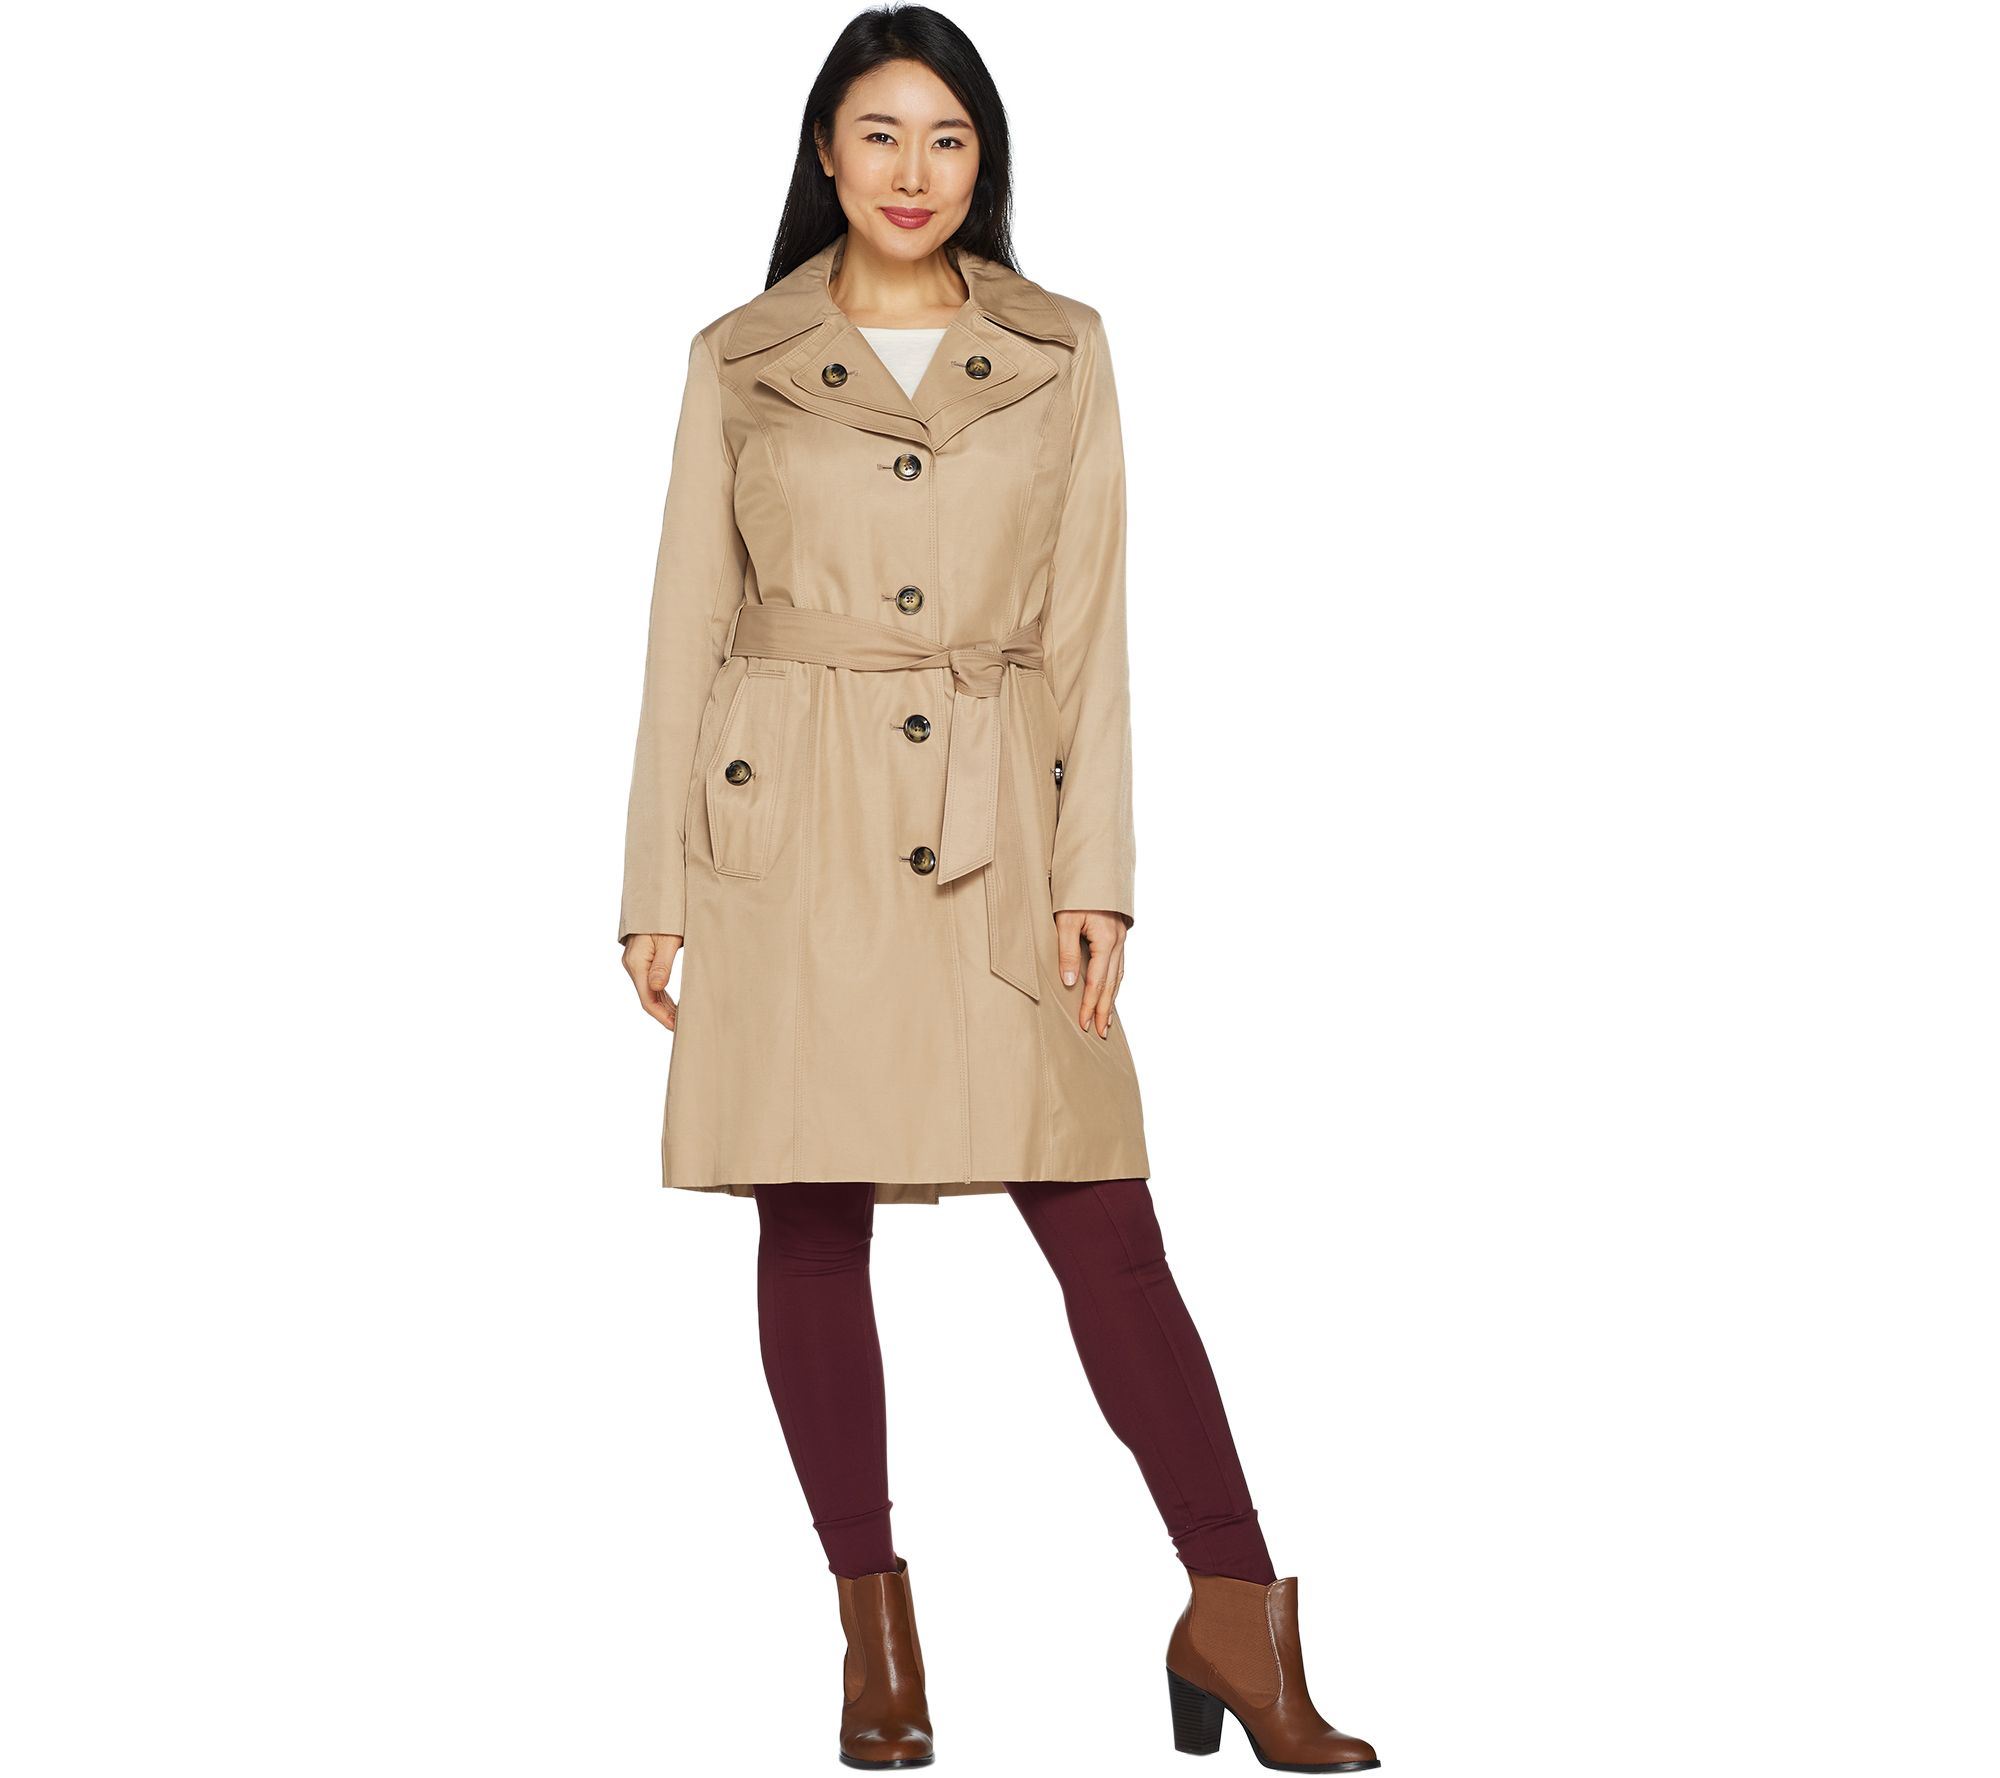 ca1d166d21a London Fog Women s Water Repellent Trench Coat - Page 1 — QVC.com